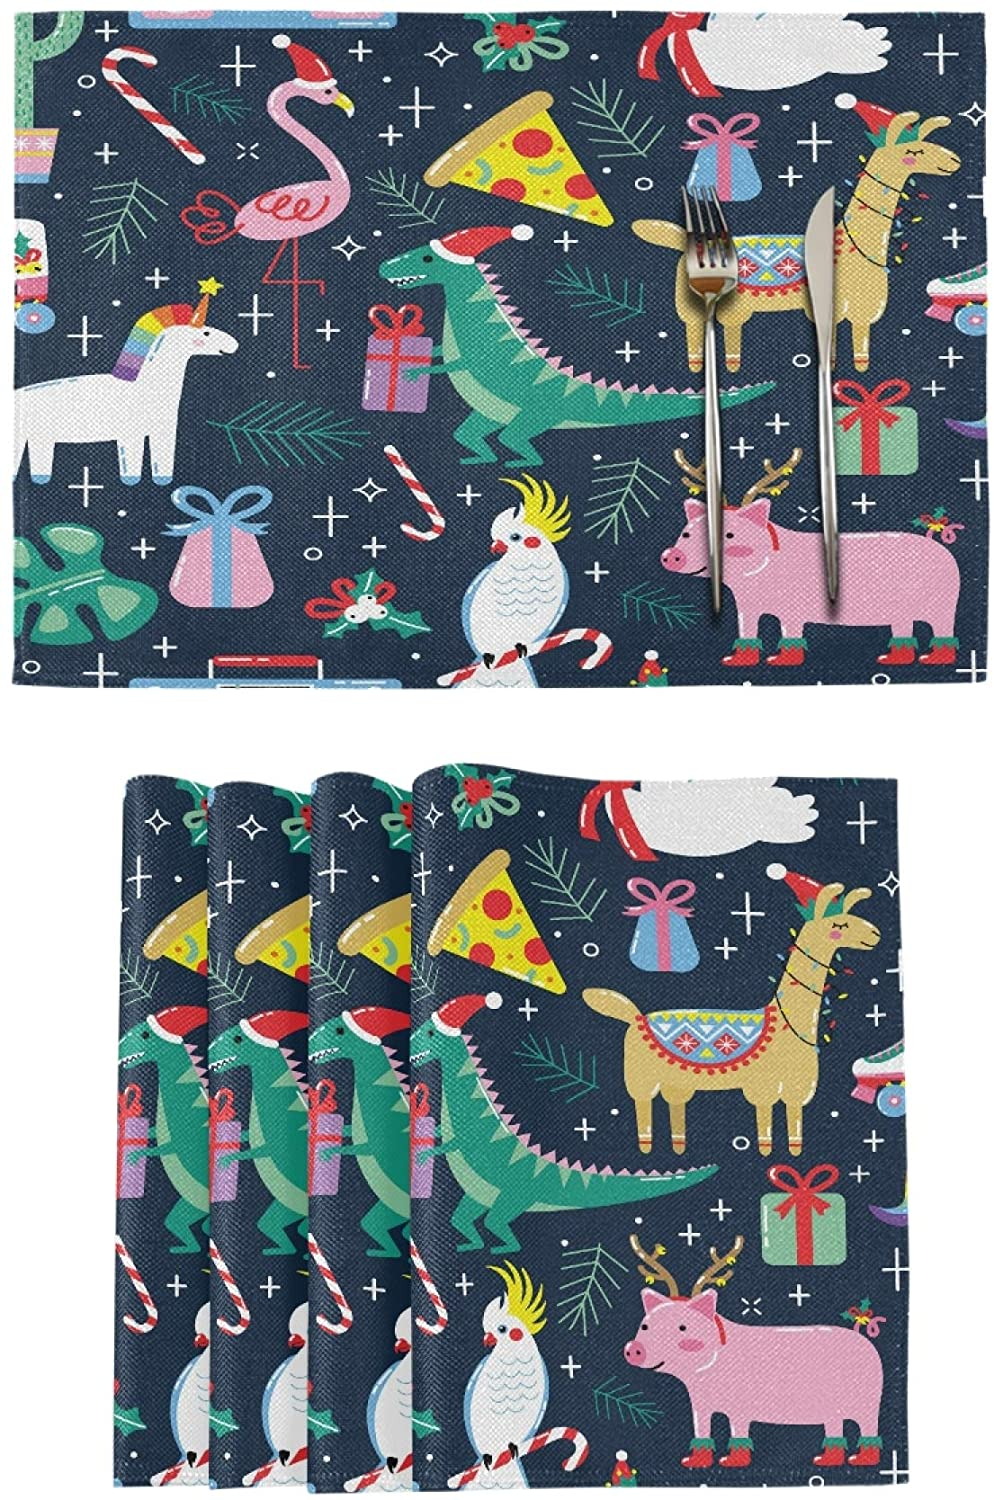 Place Mats for Dining Table Double Sided Printed Kitchen Holiday Kids Neat Placemats Fall Home Decor Set of 4 12x18 Christmas Cute Funny Animals